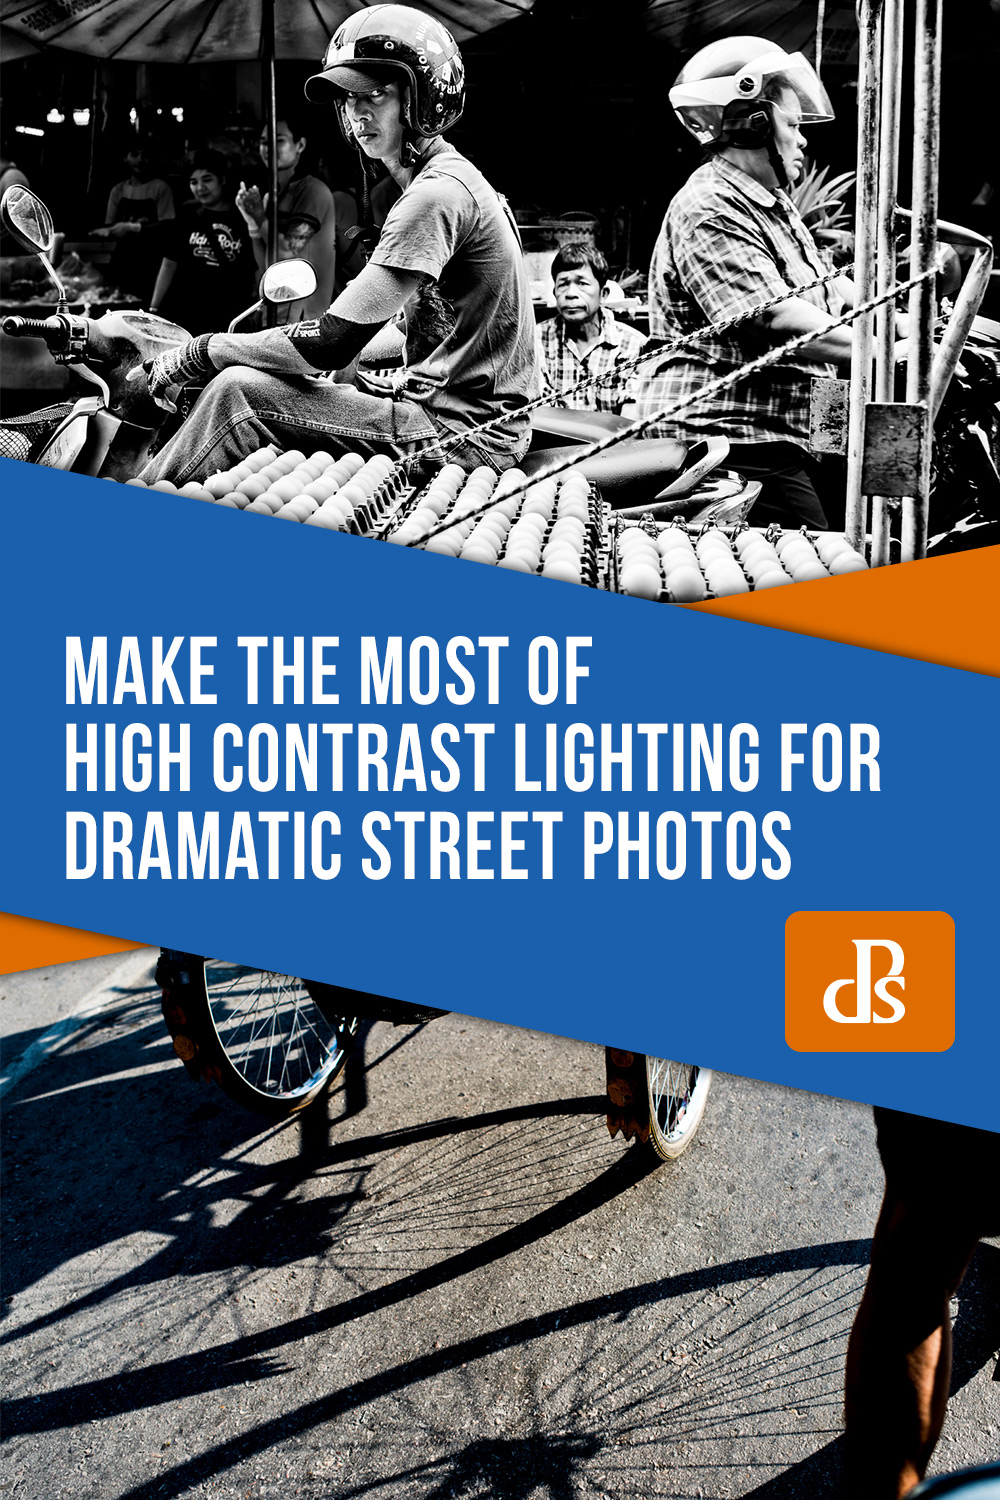 high contrast-lighting-for-dramatic-street photos' s